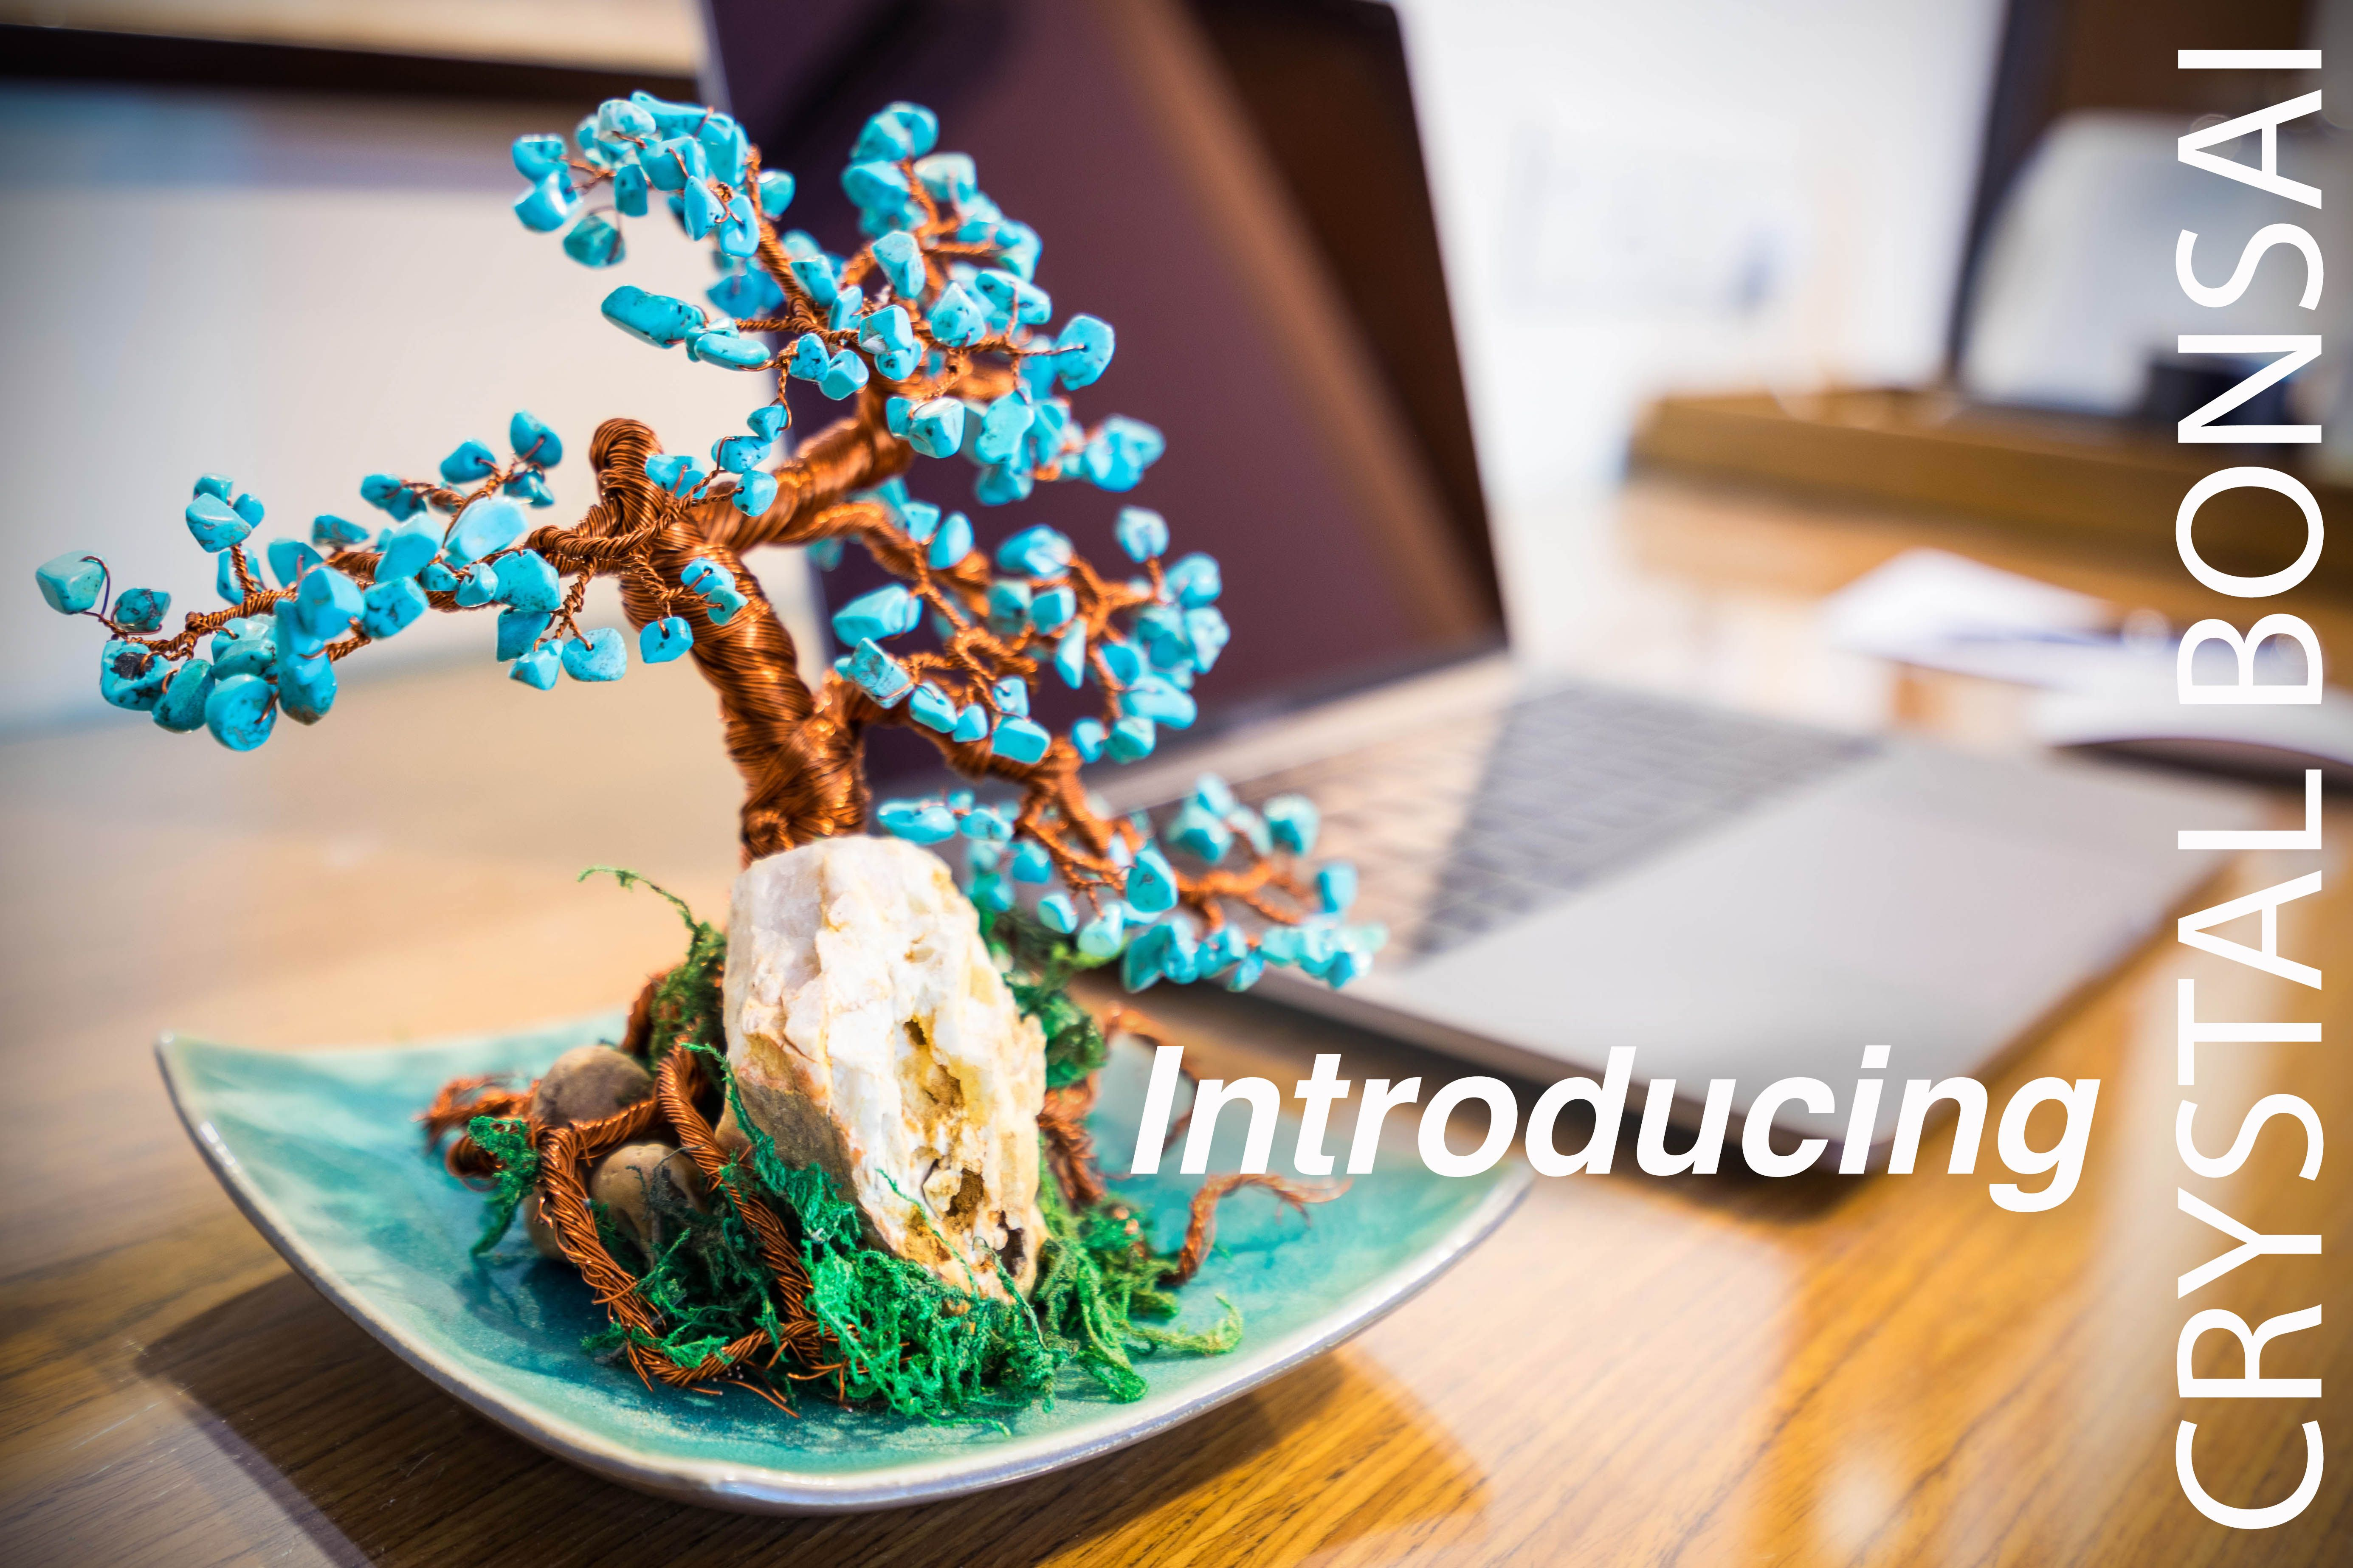 Never heard about crystal bonsai trees? Check out our website! www.crystalbonsai.com